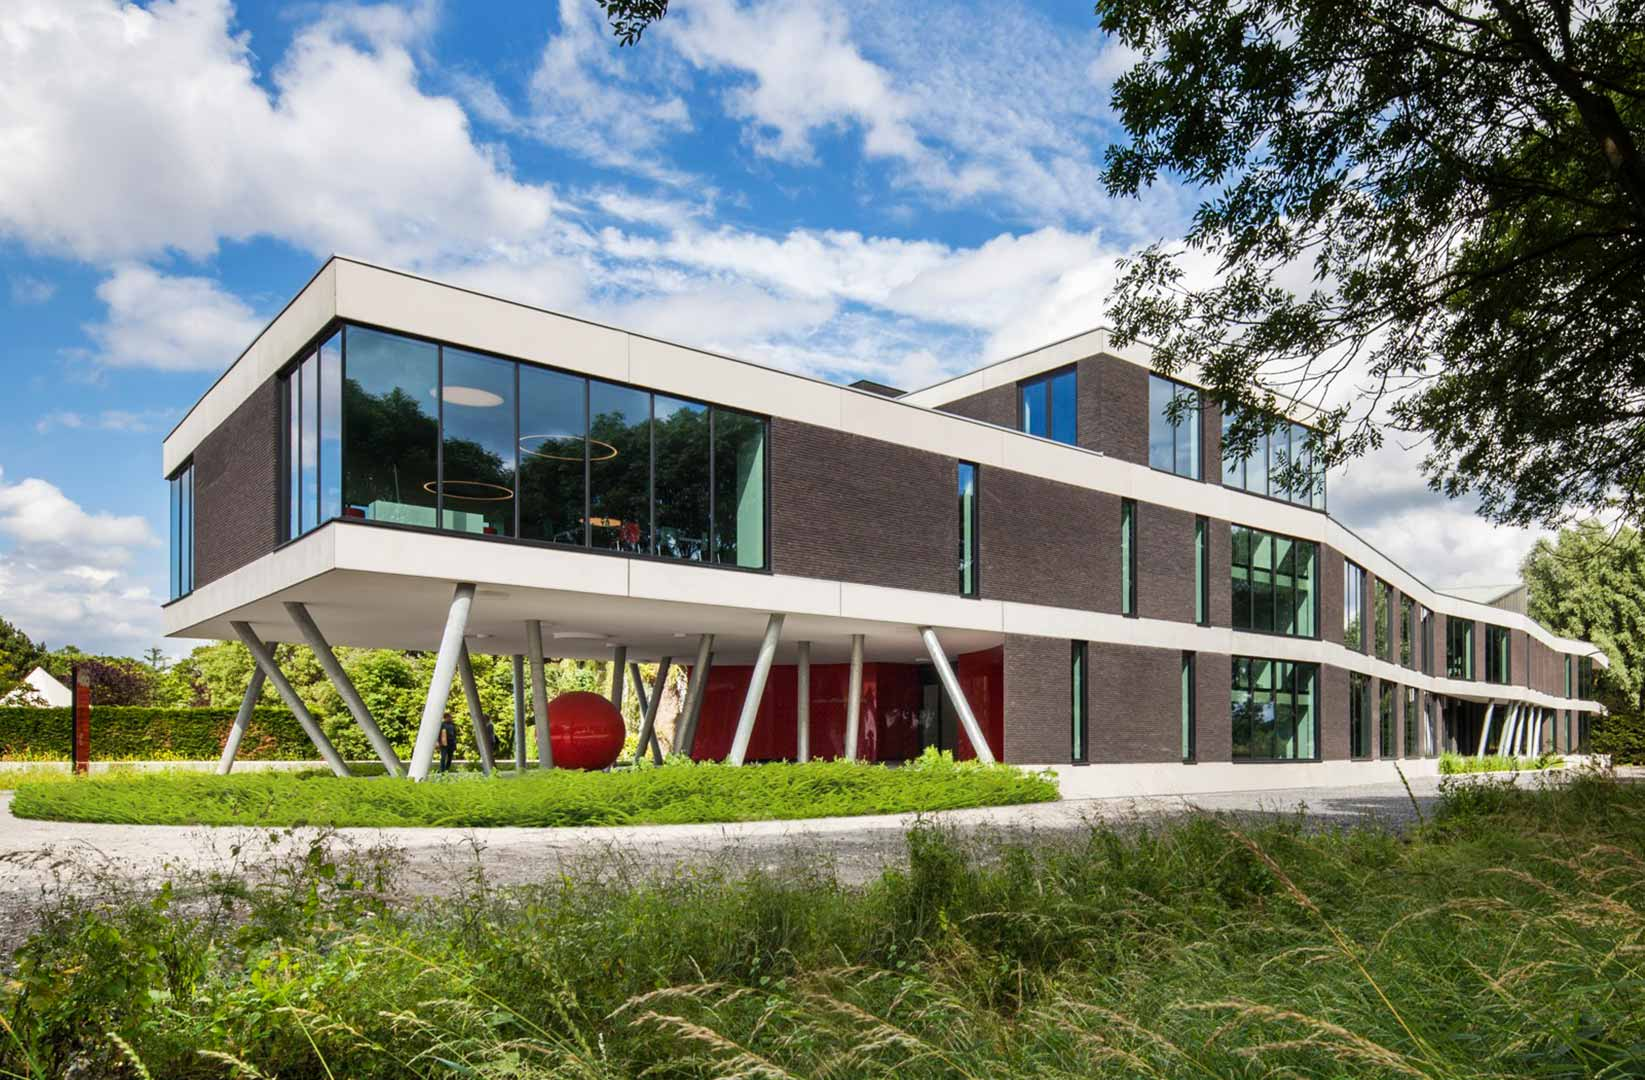 Claerhout Communication house